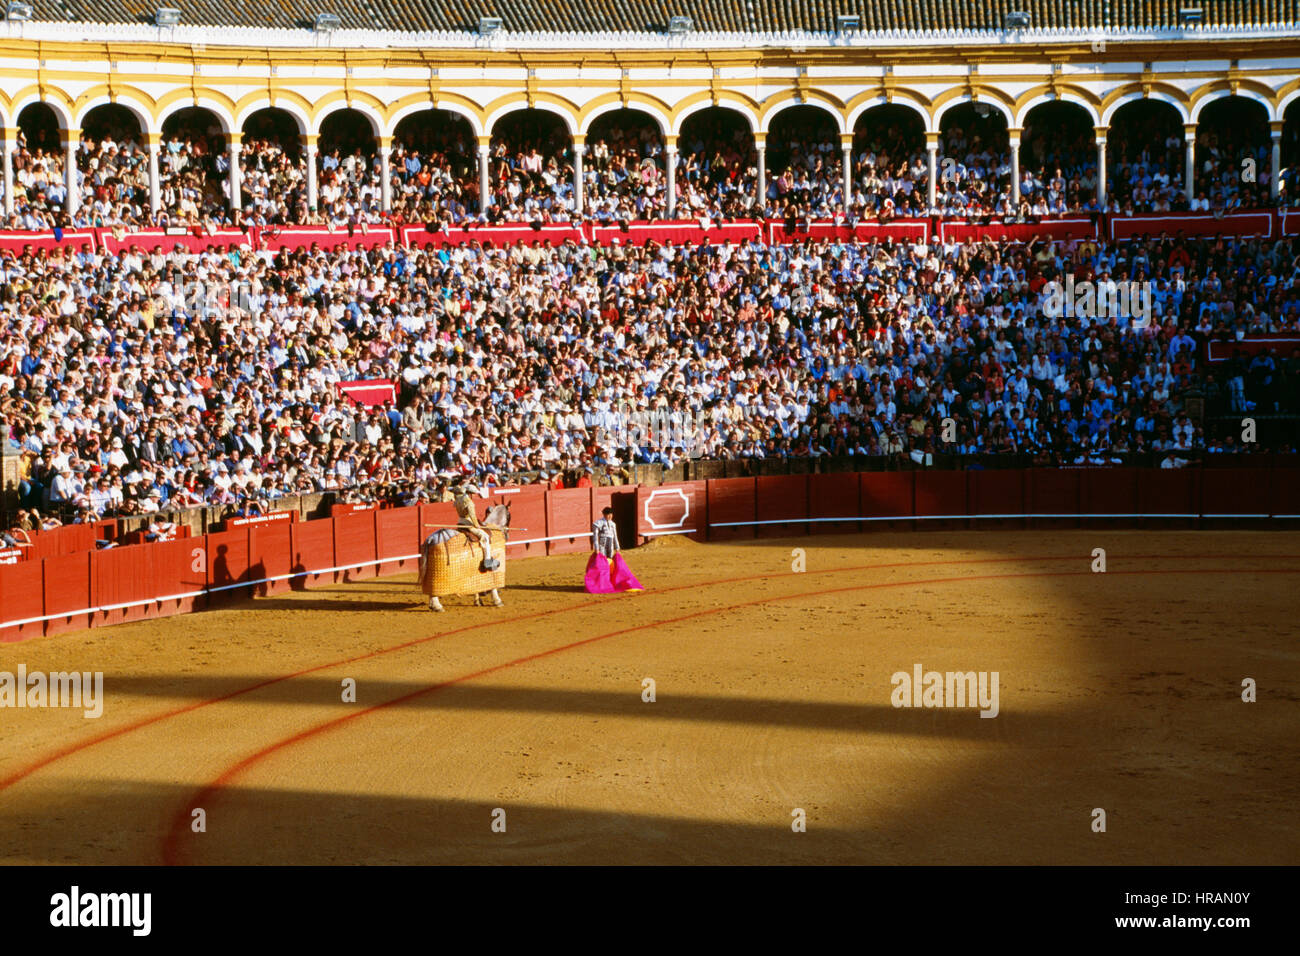 Bull Fight in the Plaza de toros de la Real Maestranza de Caballería de Sevilla, Seville, Spain - Stock Image